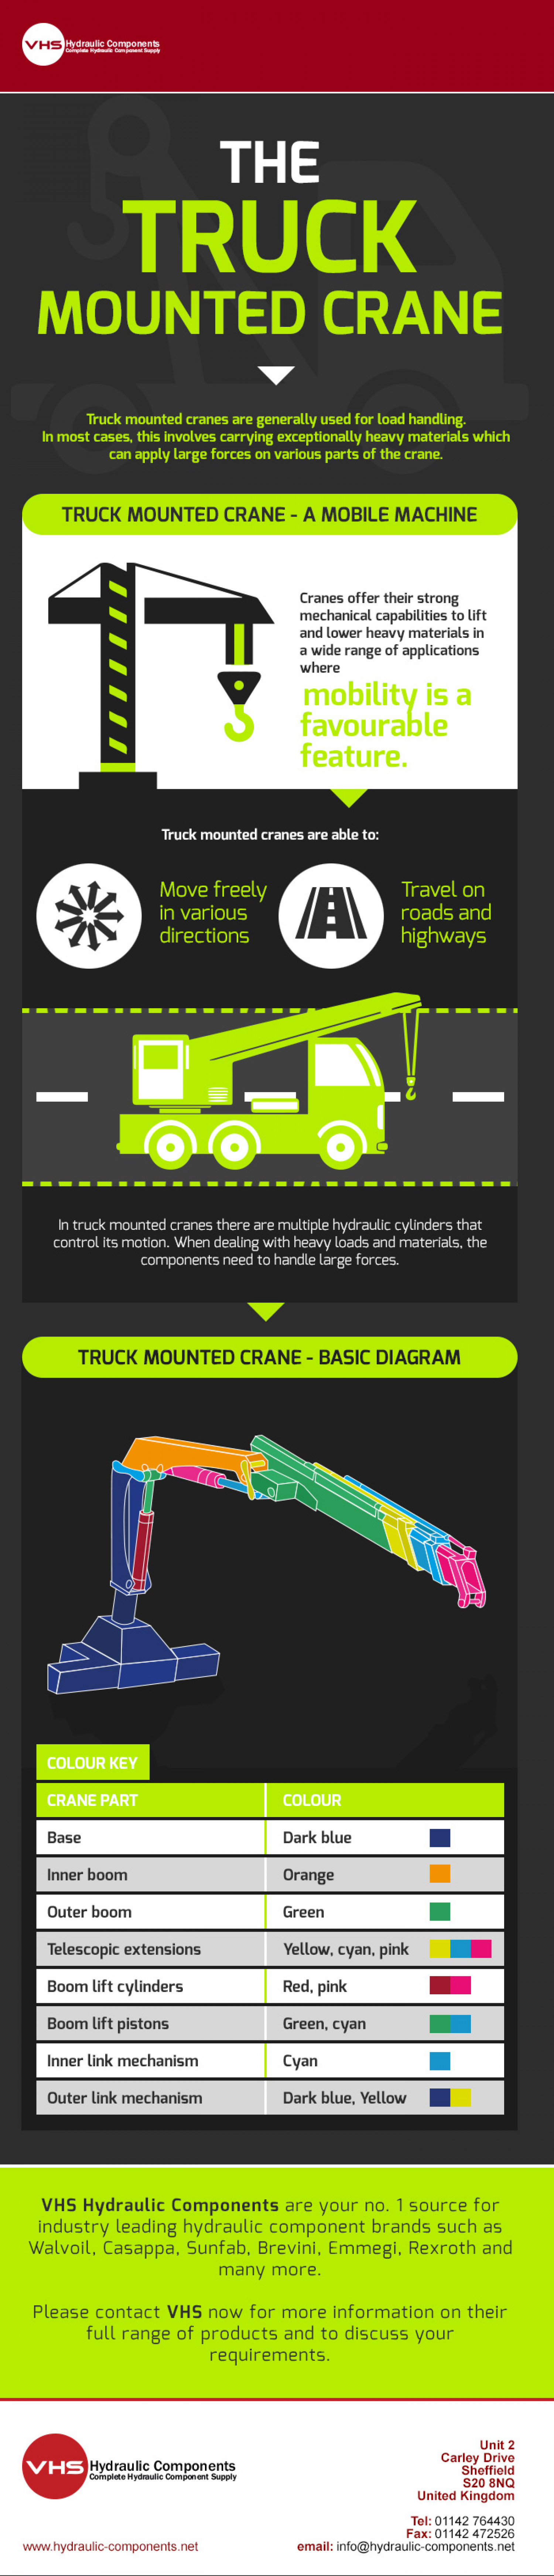 The Truck Mounted Crane Infographic